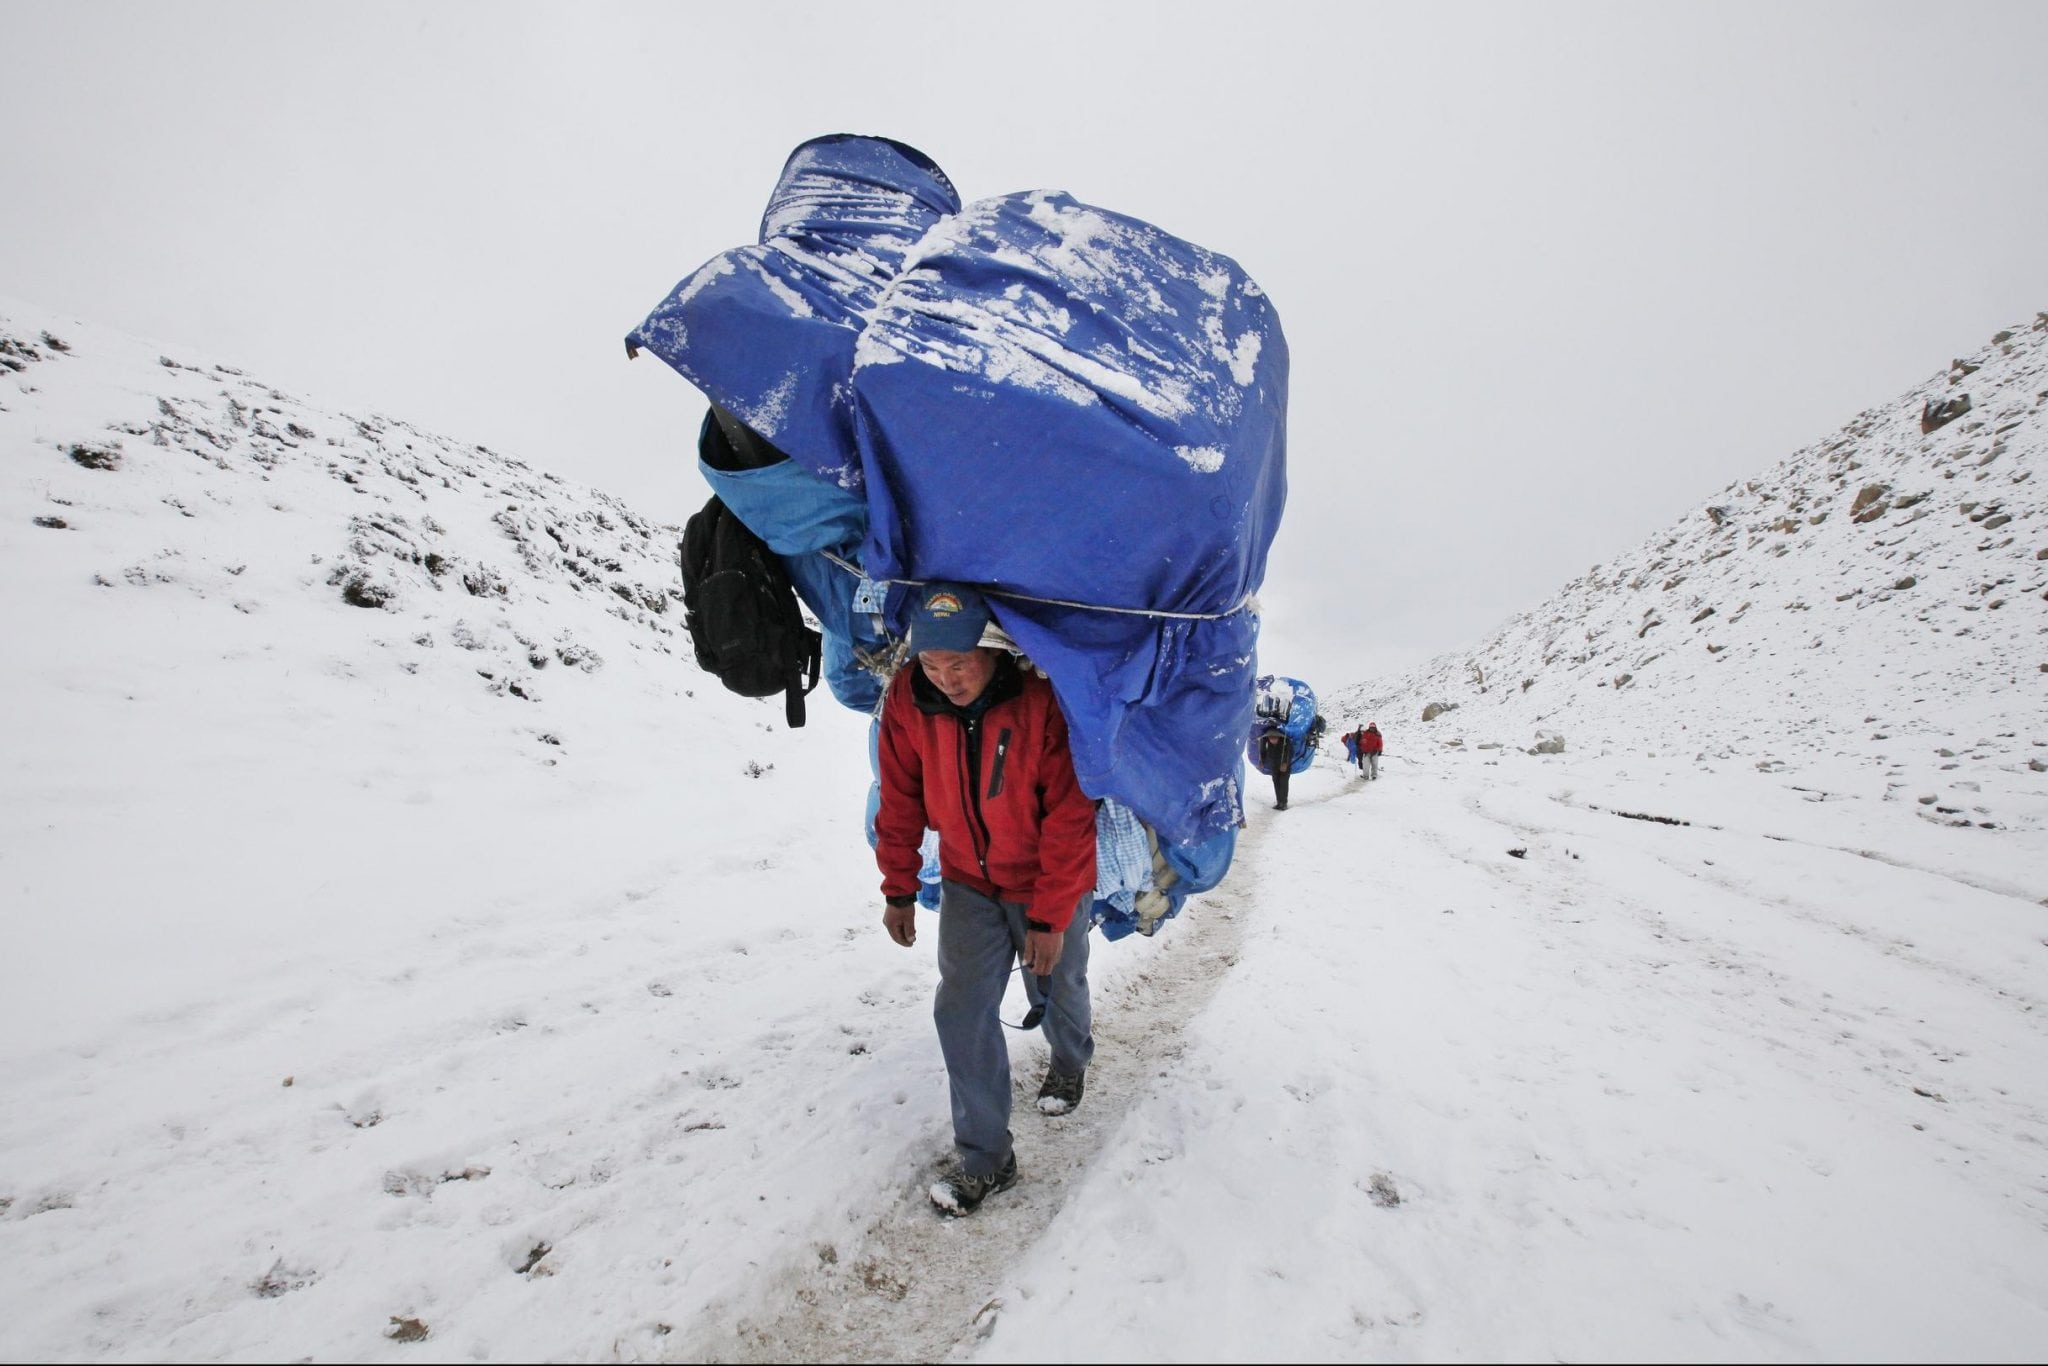 Mt Everest Tourism Continues Despite Earthquakes And